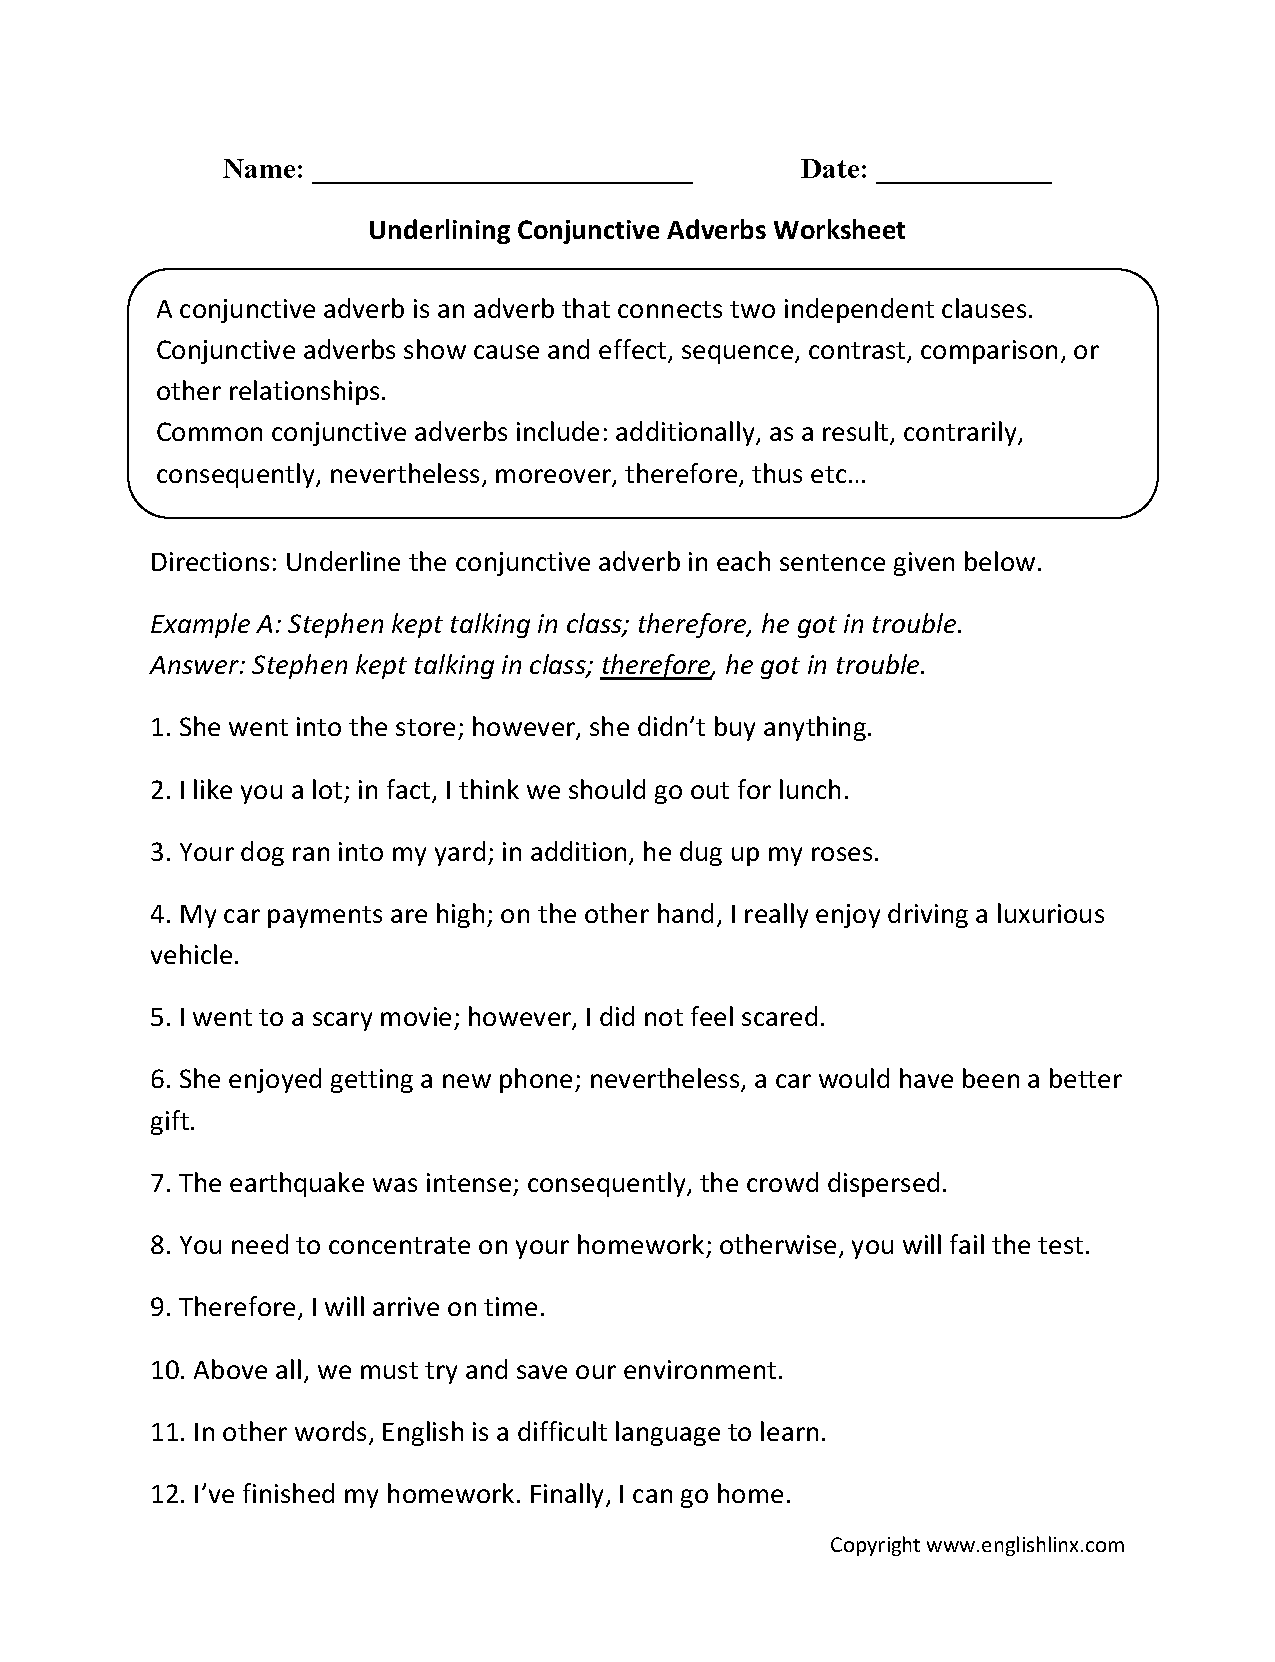 Weirdmailus  Pleasant Englishlinxcom  Conjunctions Worksheets With Lovable Worksheet With Attractive Name The Planets Worksheet Also Free Counting Worksheets  In Addition Worksheets On Ordinal Numbers For Grade  And Mode Mean Median And Range Worksheets As Well As Worksheet Math Grade  Additionally Seed Germination Worksheets From Englishlinxcom With Weirdmailus  Lovable Englishlinxcom  Conjunctions Worksheets With Attractive Worksheet And Pleasant Name The Planets Worksheet Also Free Counting Worksheets  In Addition Worksheets On Ordinal Numbers For Grade  From Englishlinxcom